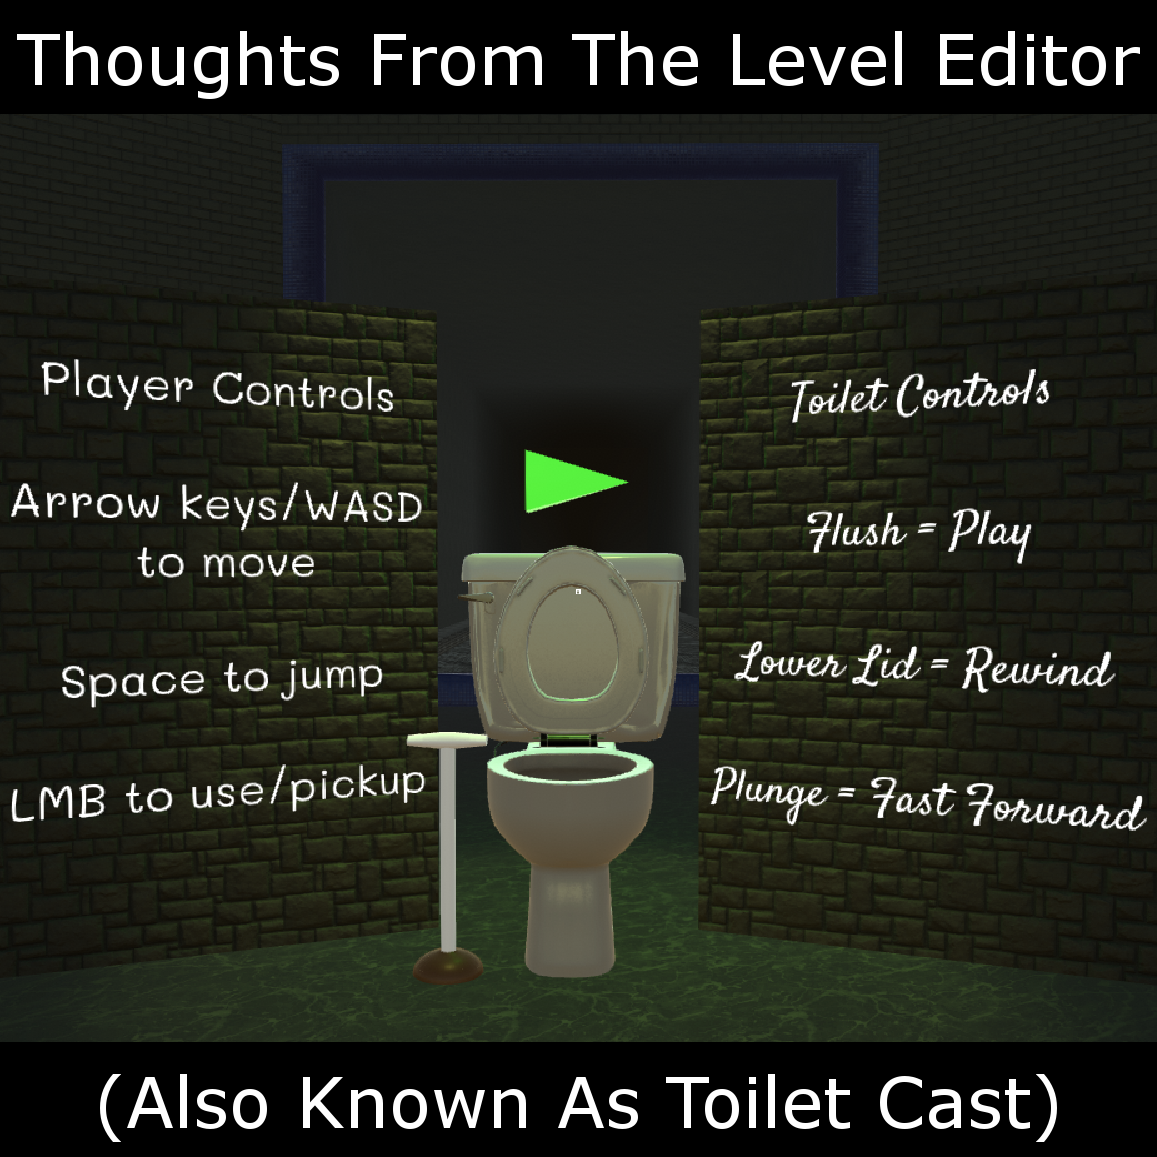 Thoughts From The Level Editor